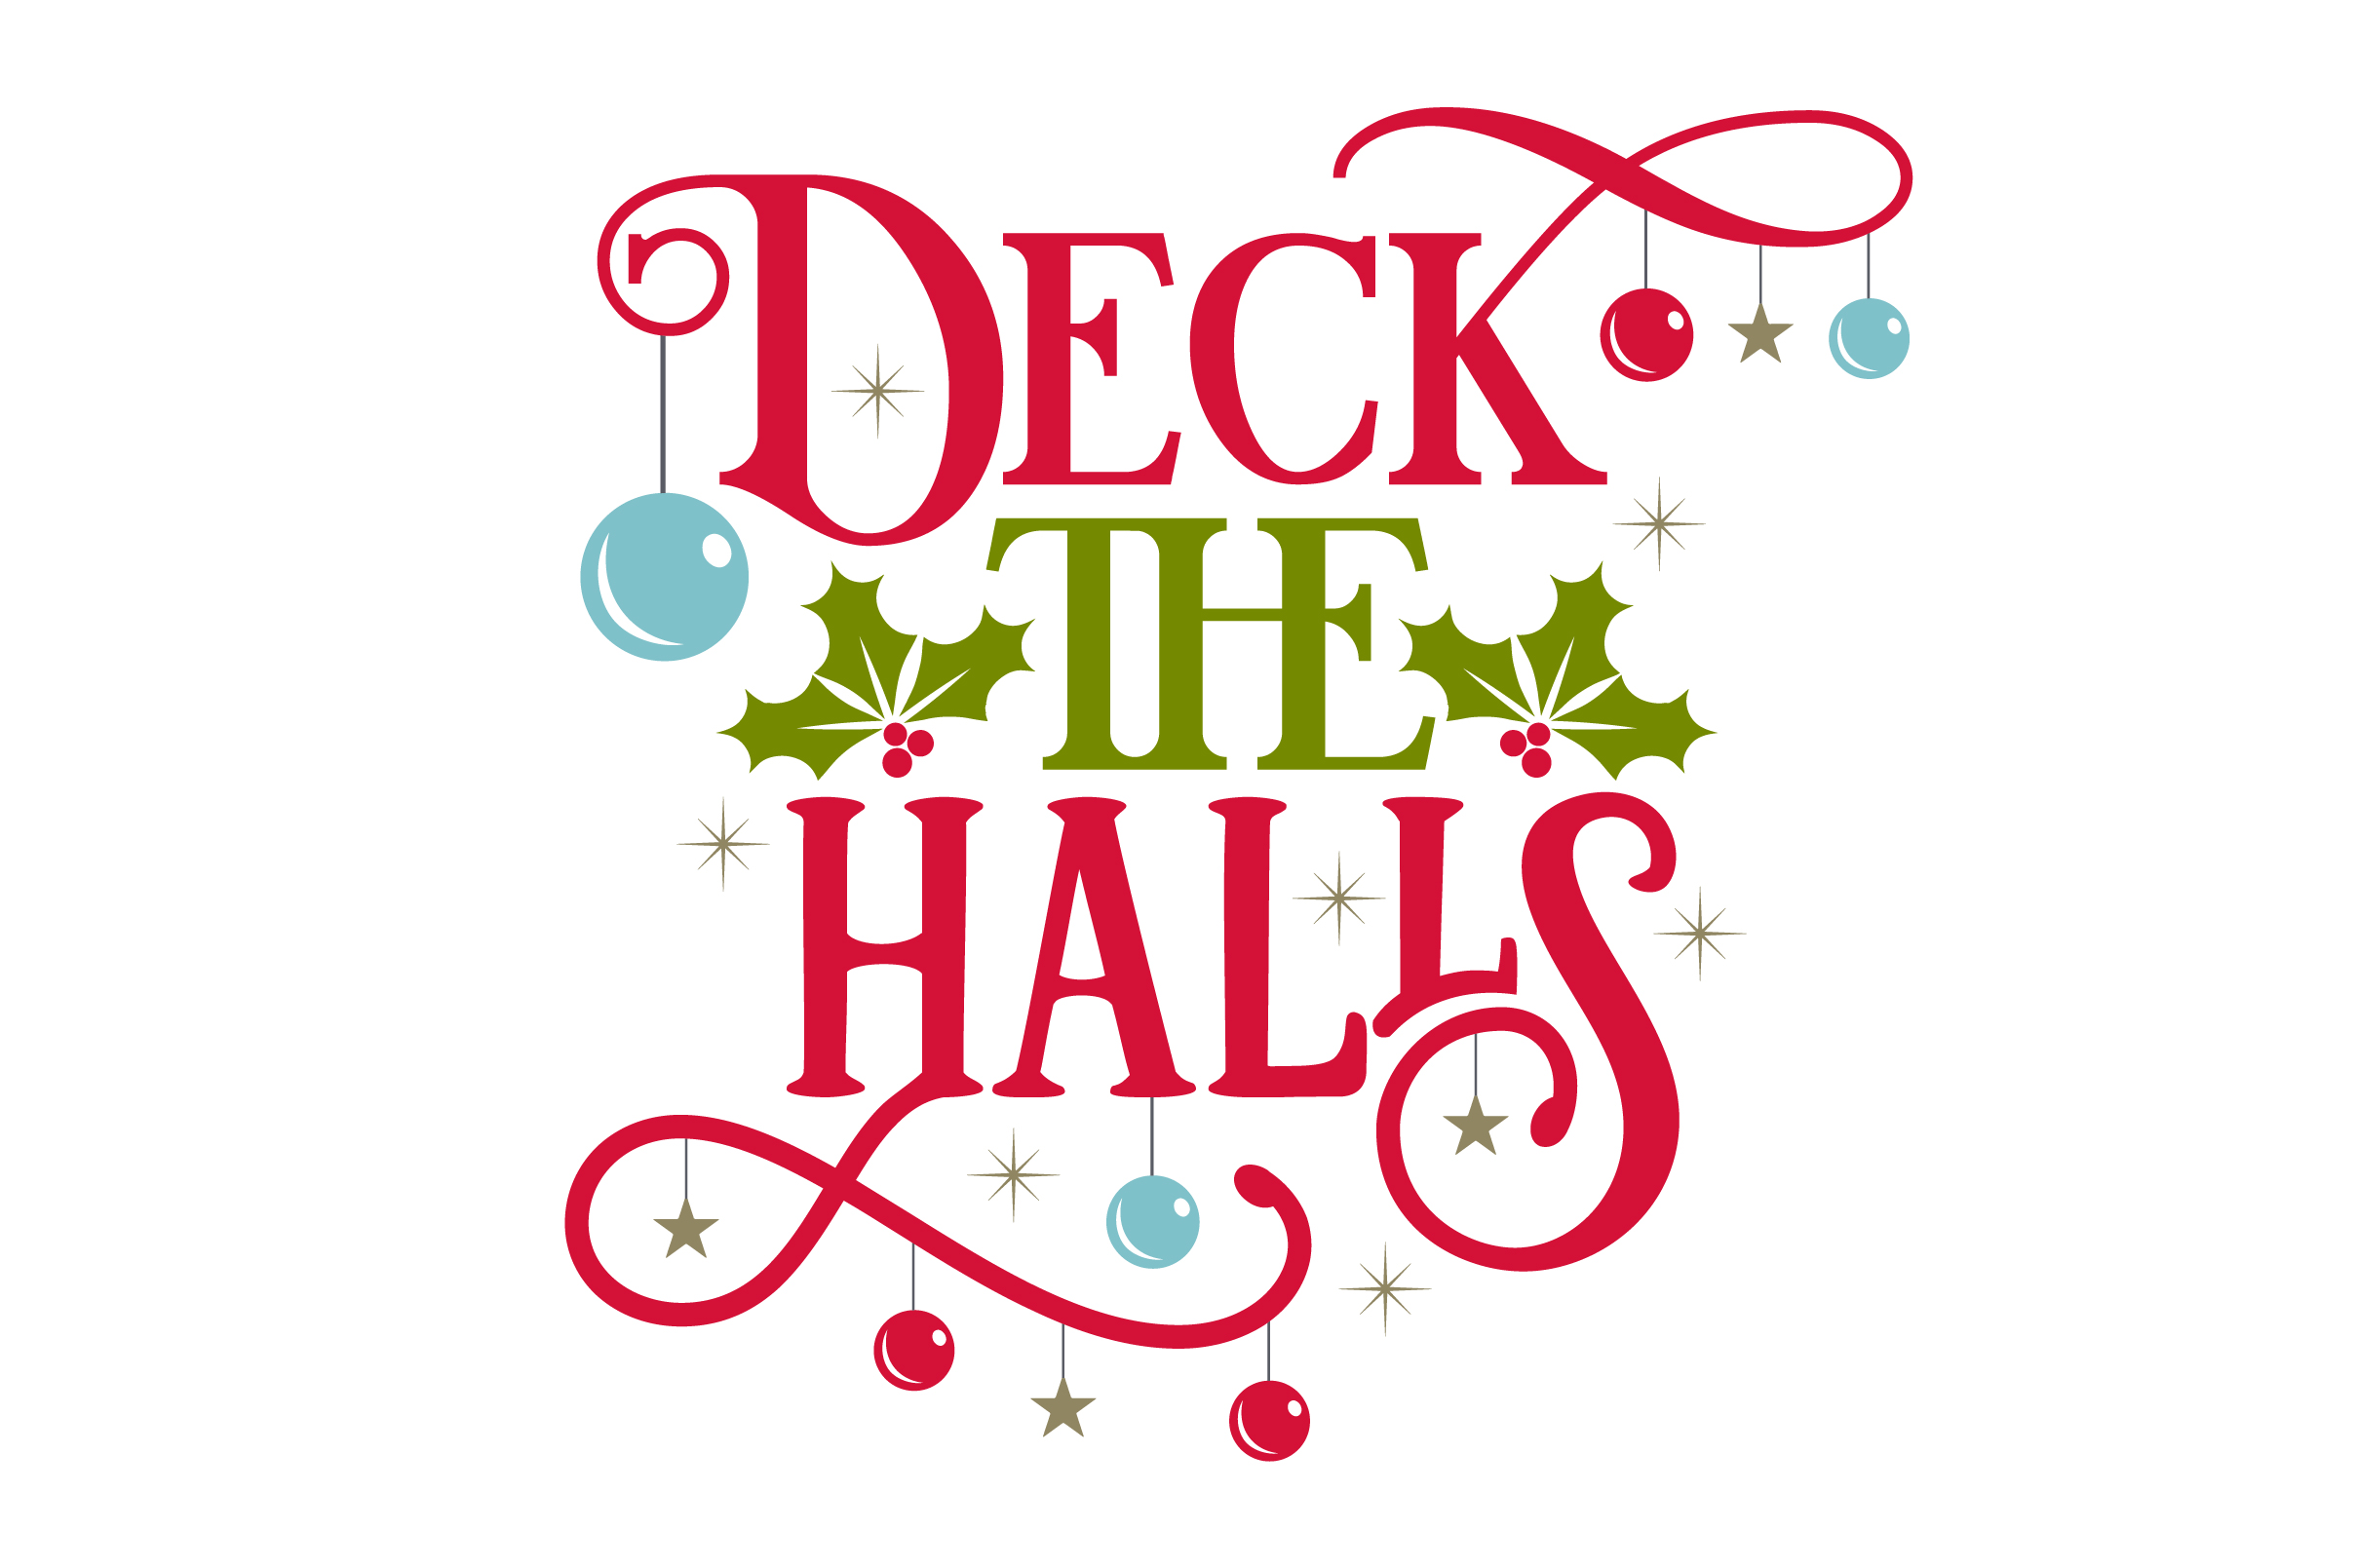 Download Free Deck The Halls Svg Cut File By Creative Fabrica Crafts for Cricut Explore, Silhouette and other cutting machines.